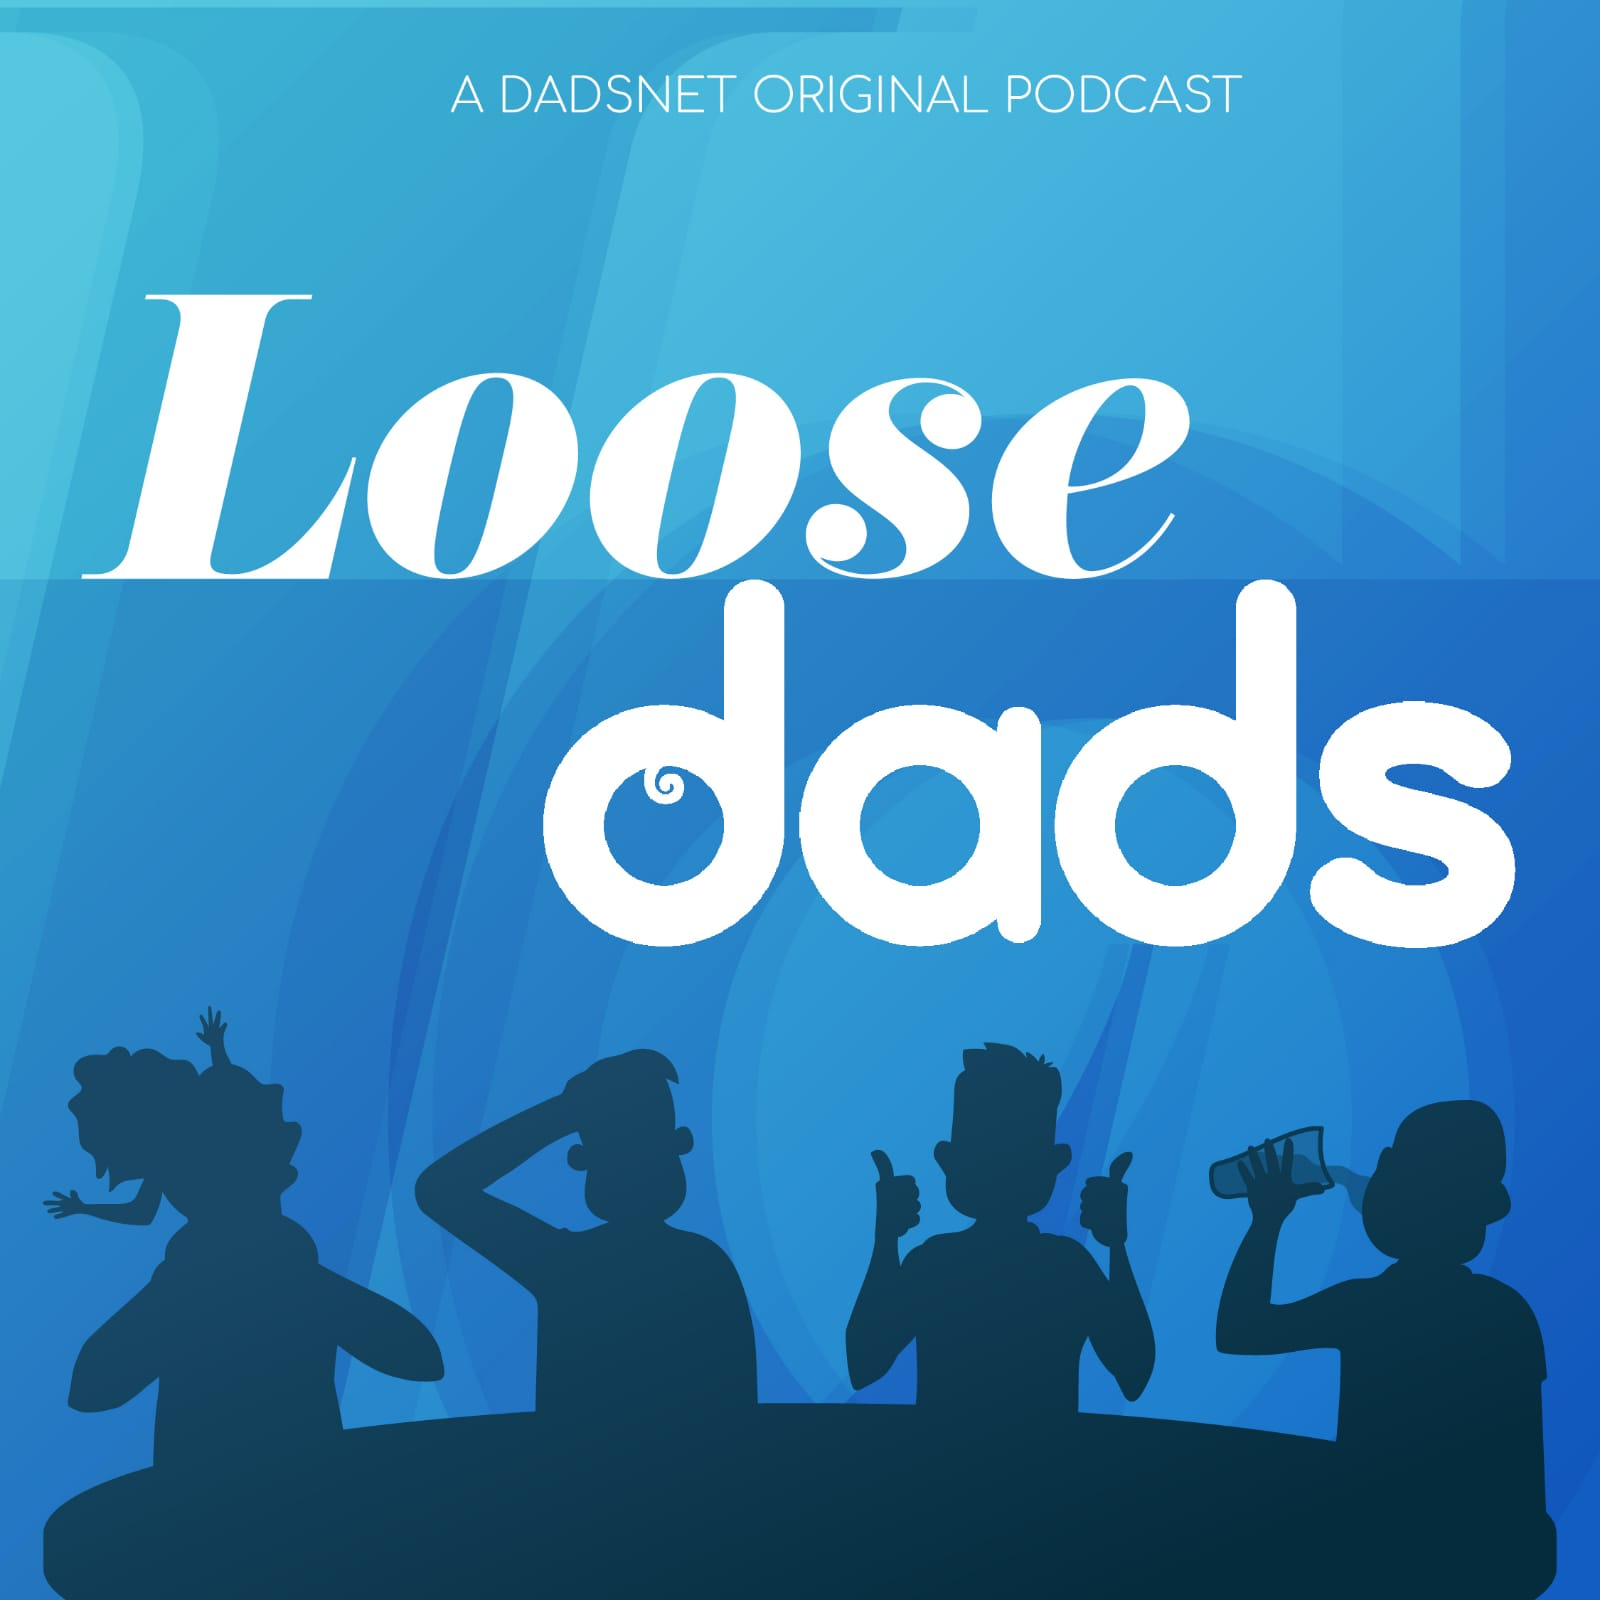 Dad Podcasts, WhatsApp Image 2020 11 02 at 12.59.24%, %